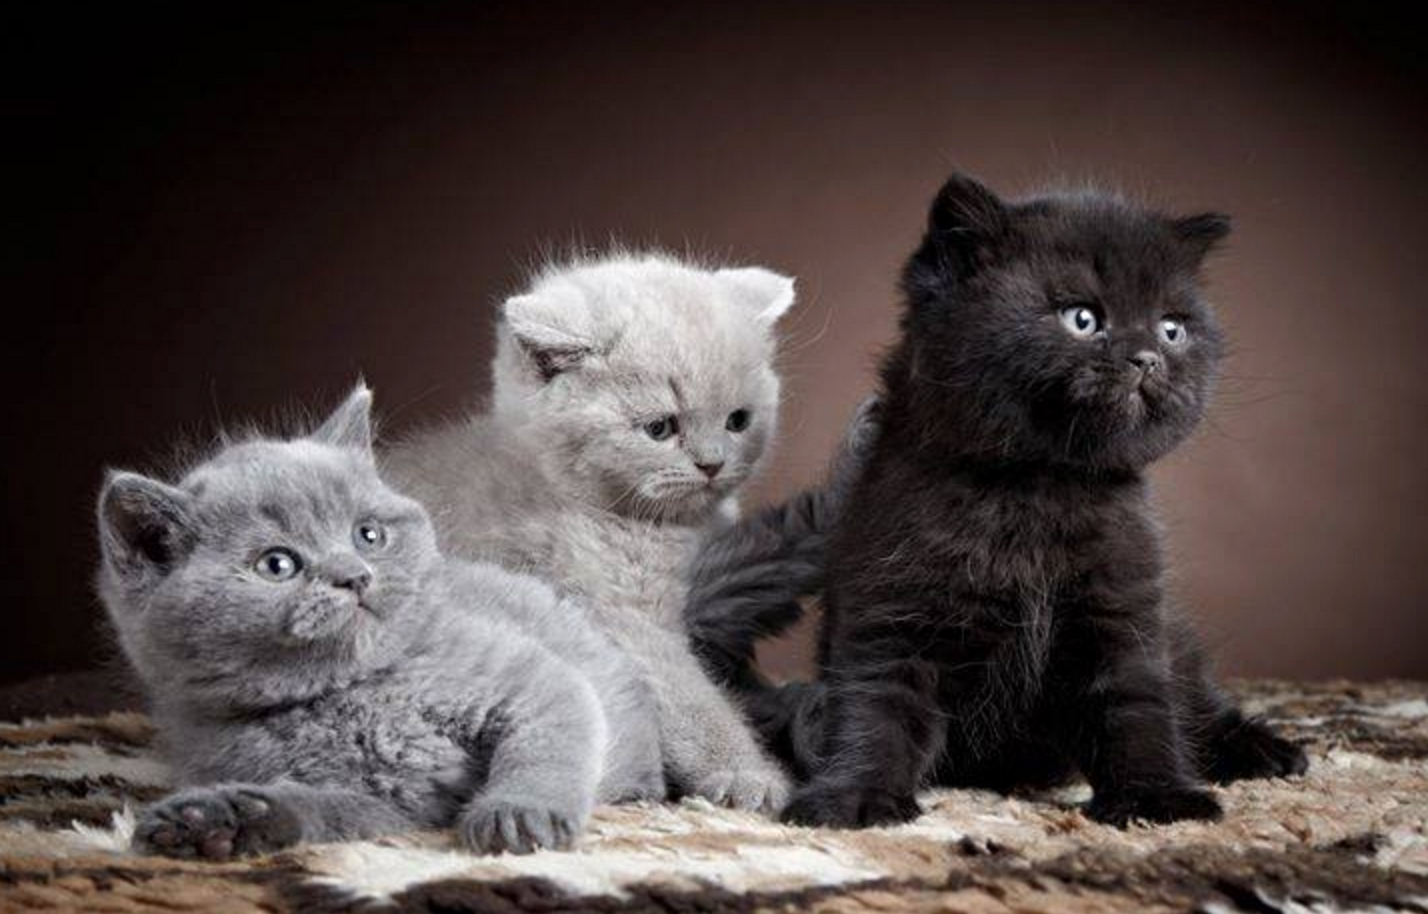 3 shades of grey